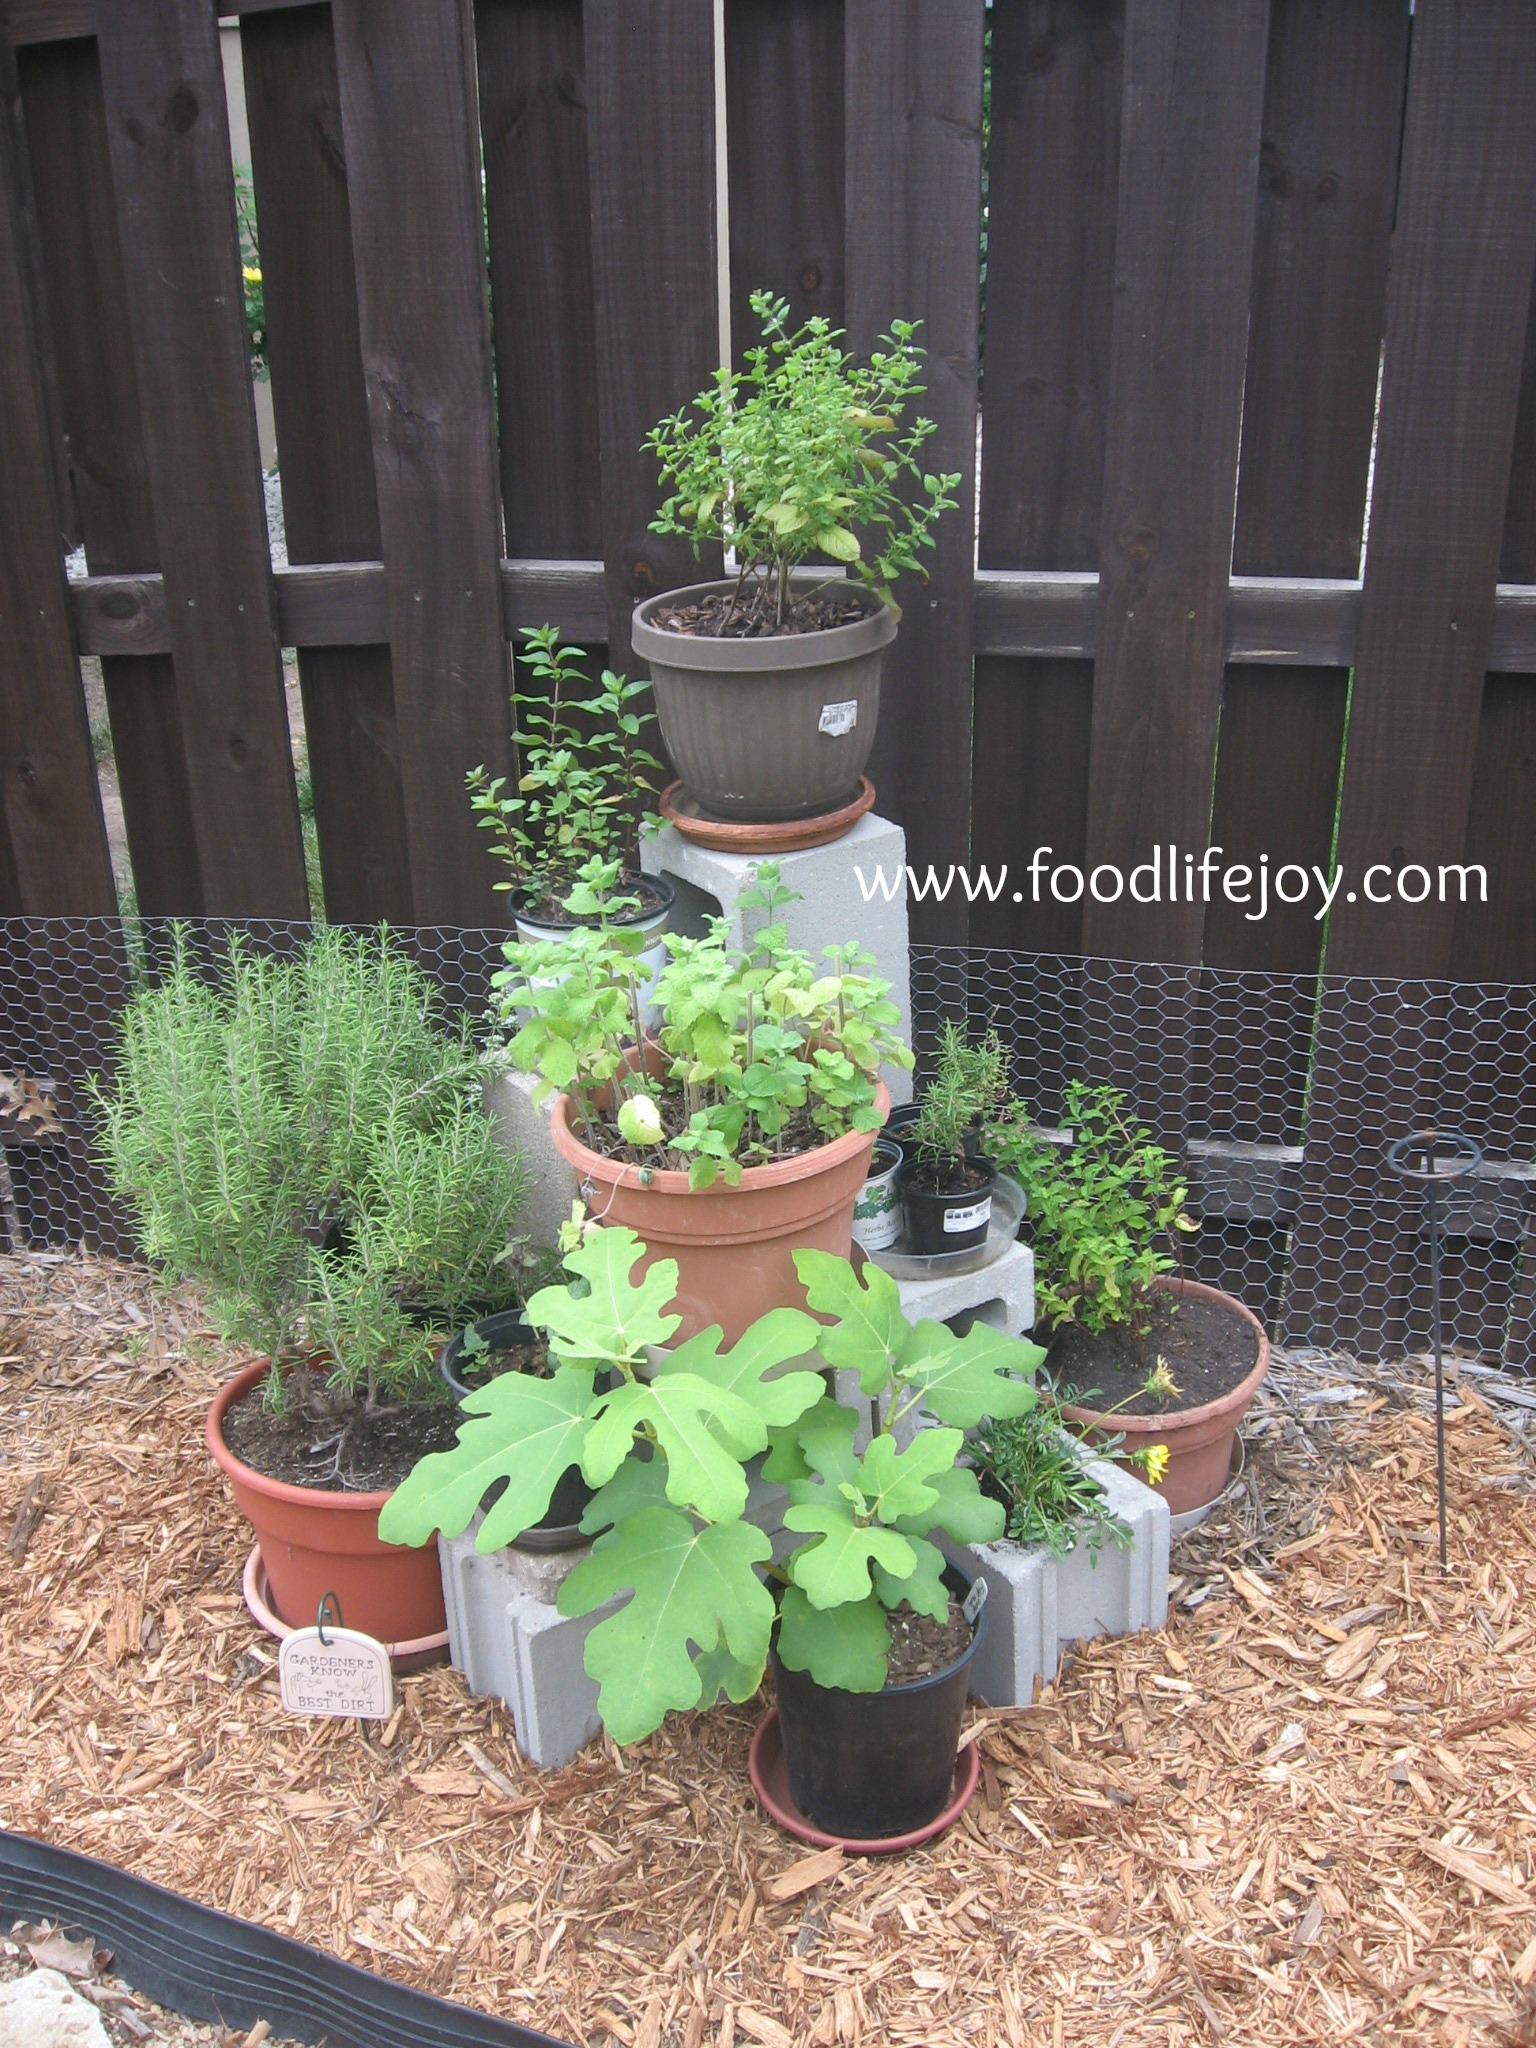 Cinder Block Herb Tower-Six blocks